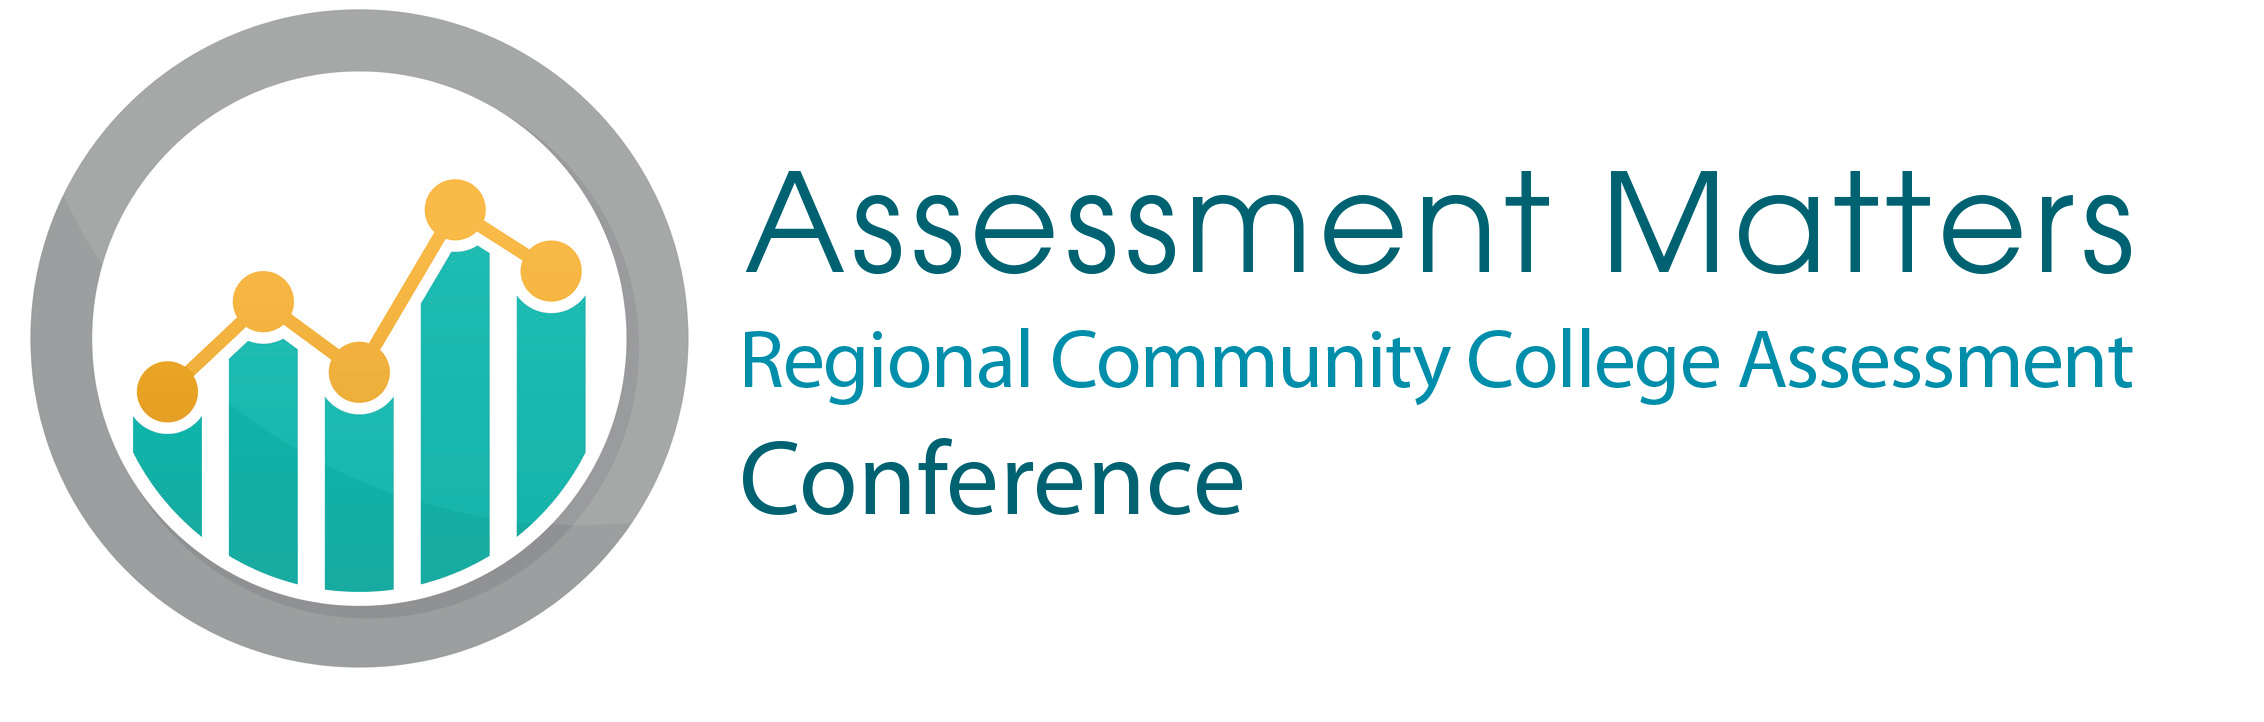 Assessment Matters: Regional Community College Assessment Conference